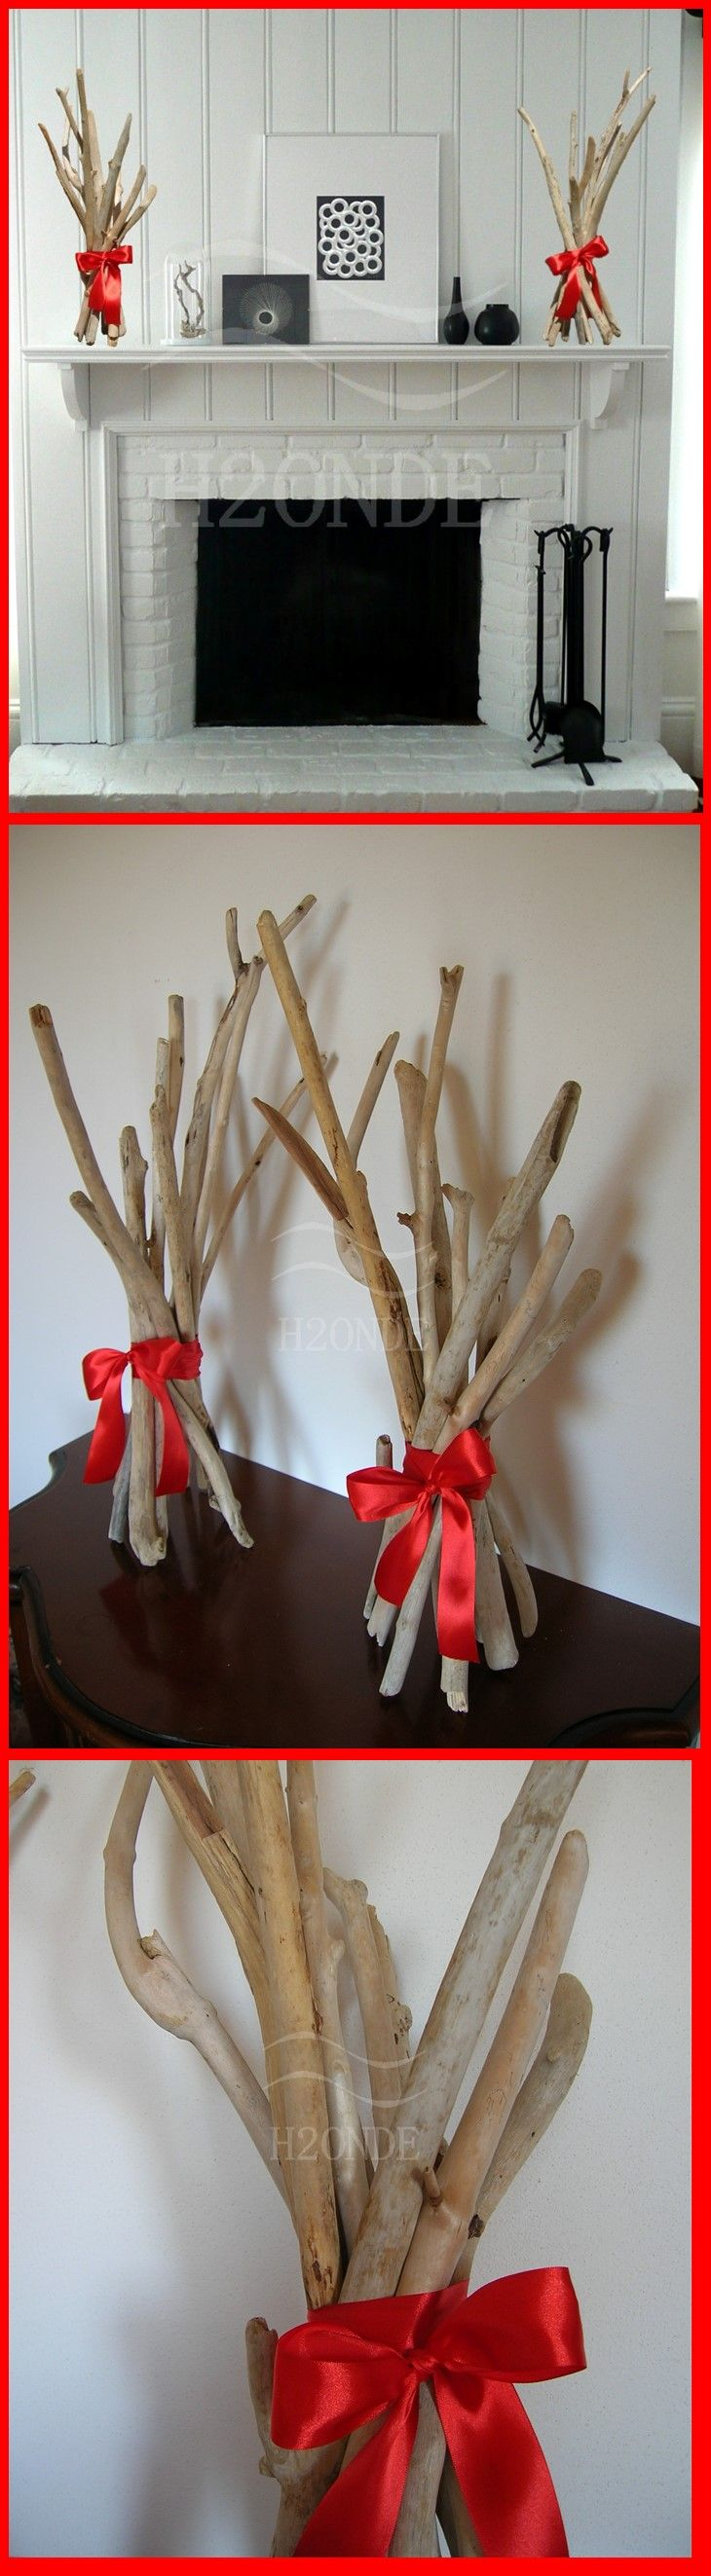 Set of 2 driftwood beach decor, coastal table centerpiece,mantel decoration,fireplace decor,floor decor,christmas ornament,xmas sculpture Home Décor  Ornaments & Accents  modern driftwood art  beach home decor  best cottage decor wedding centerpiece  driftwood decor  wood mantel decor  wedding decoration  table best gift mantel sculpture art  fireplace ornament  wood coffee table centrotavola legno  arredo camino h2onde matrimonio arredo casa fascio